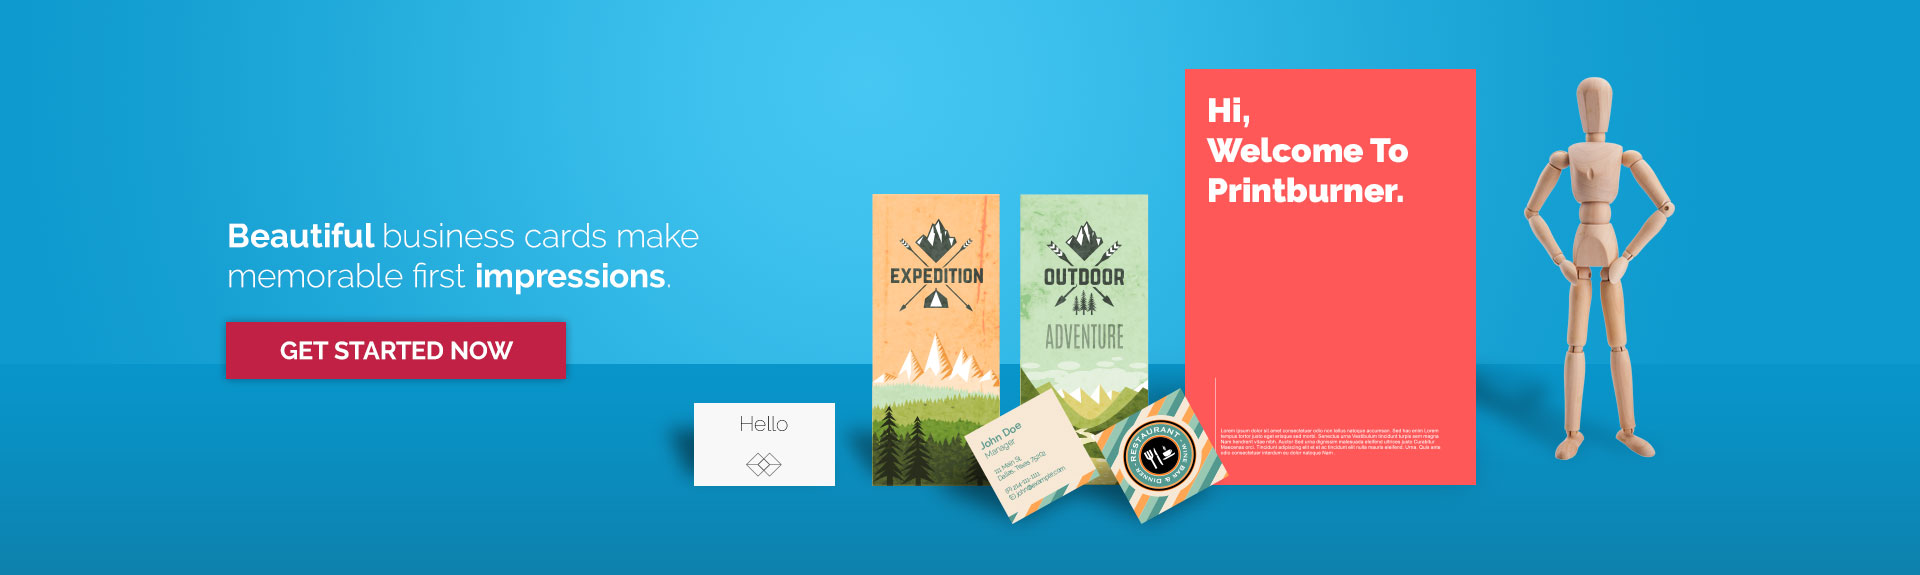 Beautiful business cards make memorable first impressions